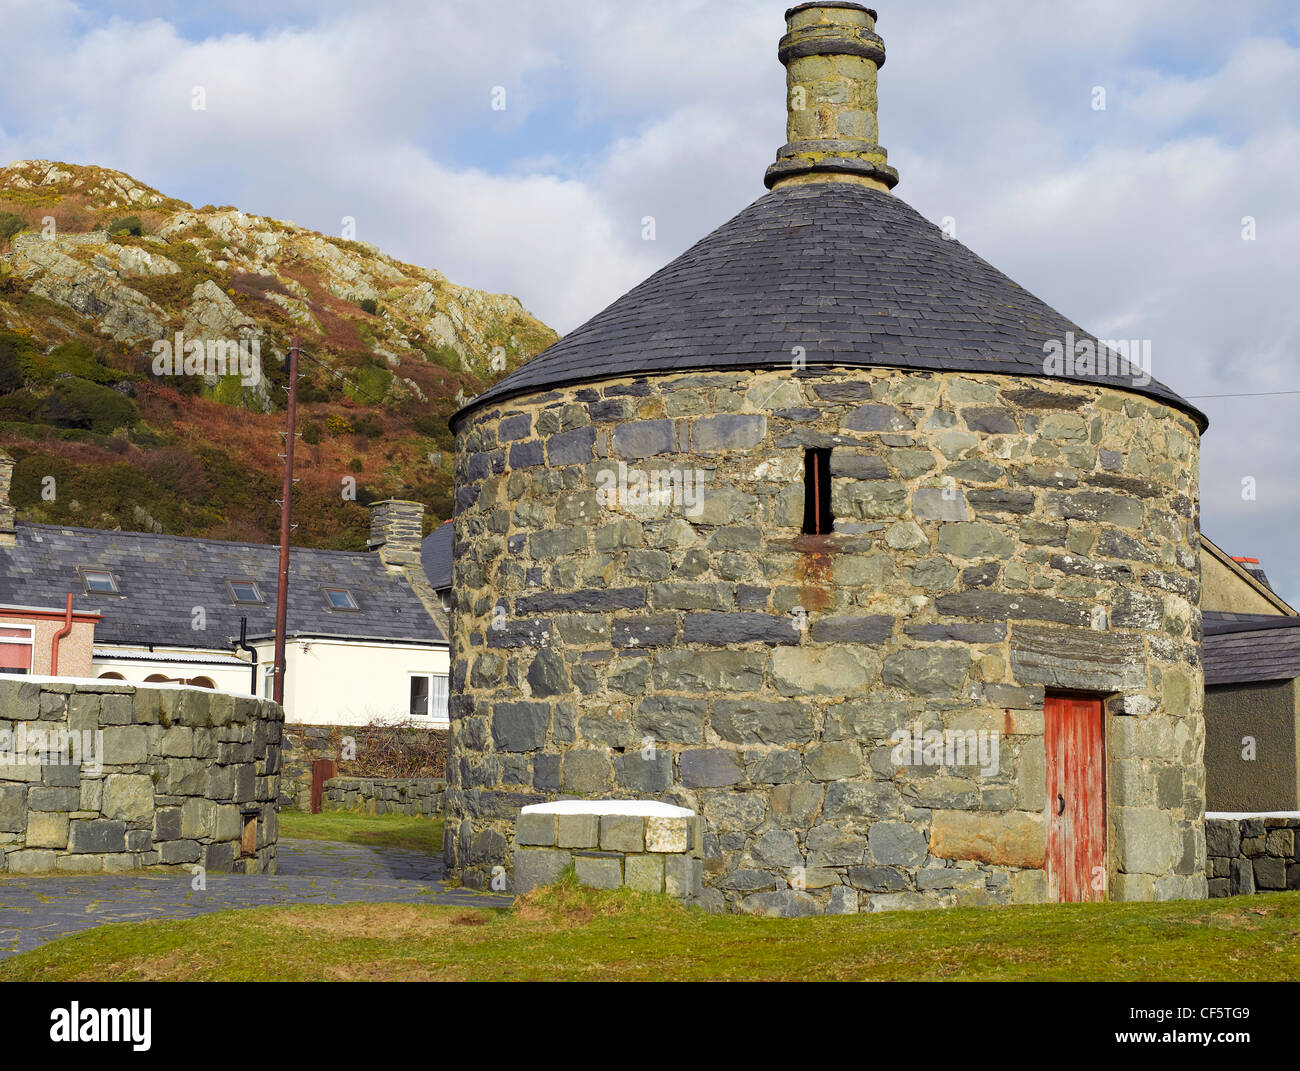 Ty Crwn ('Round House'), built as a lock-up to detain offenders as they waited to be transferred to court - Stock Image